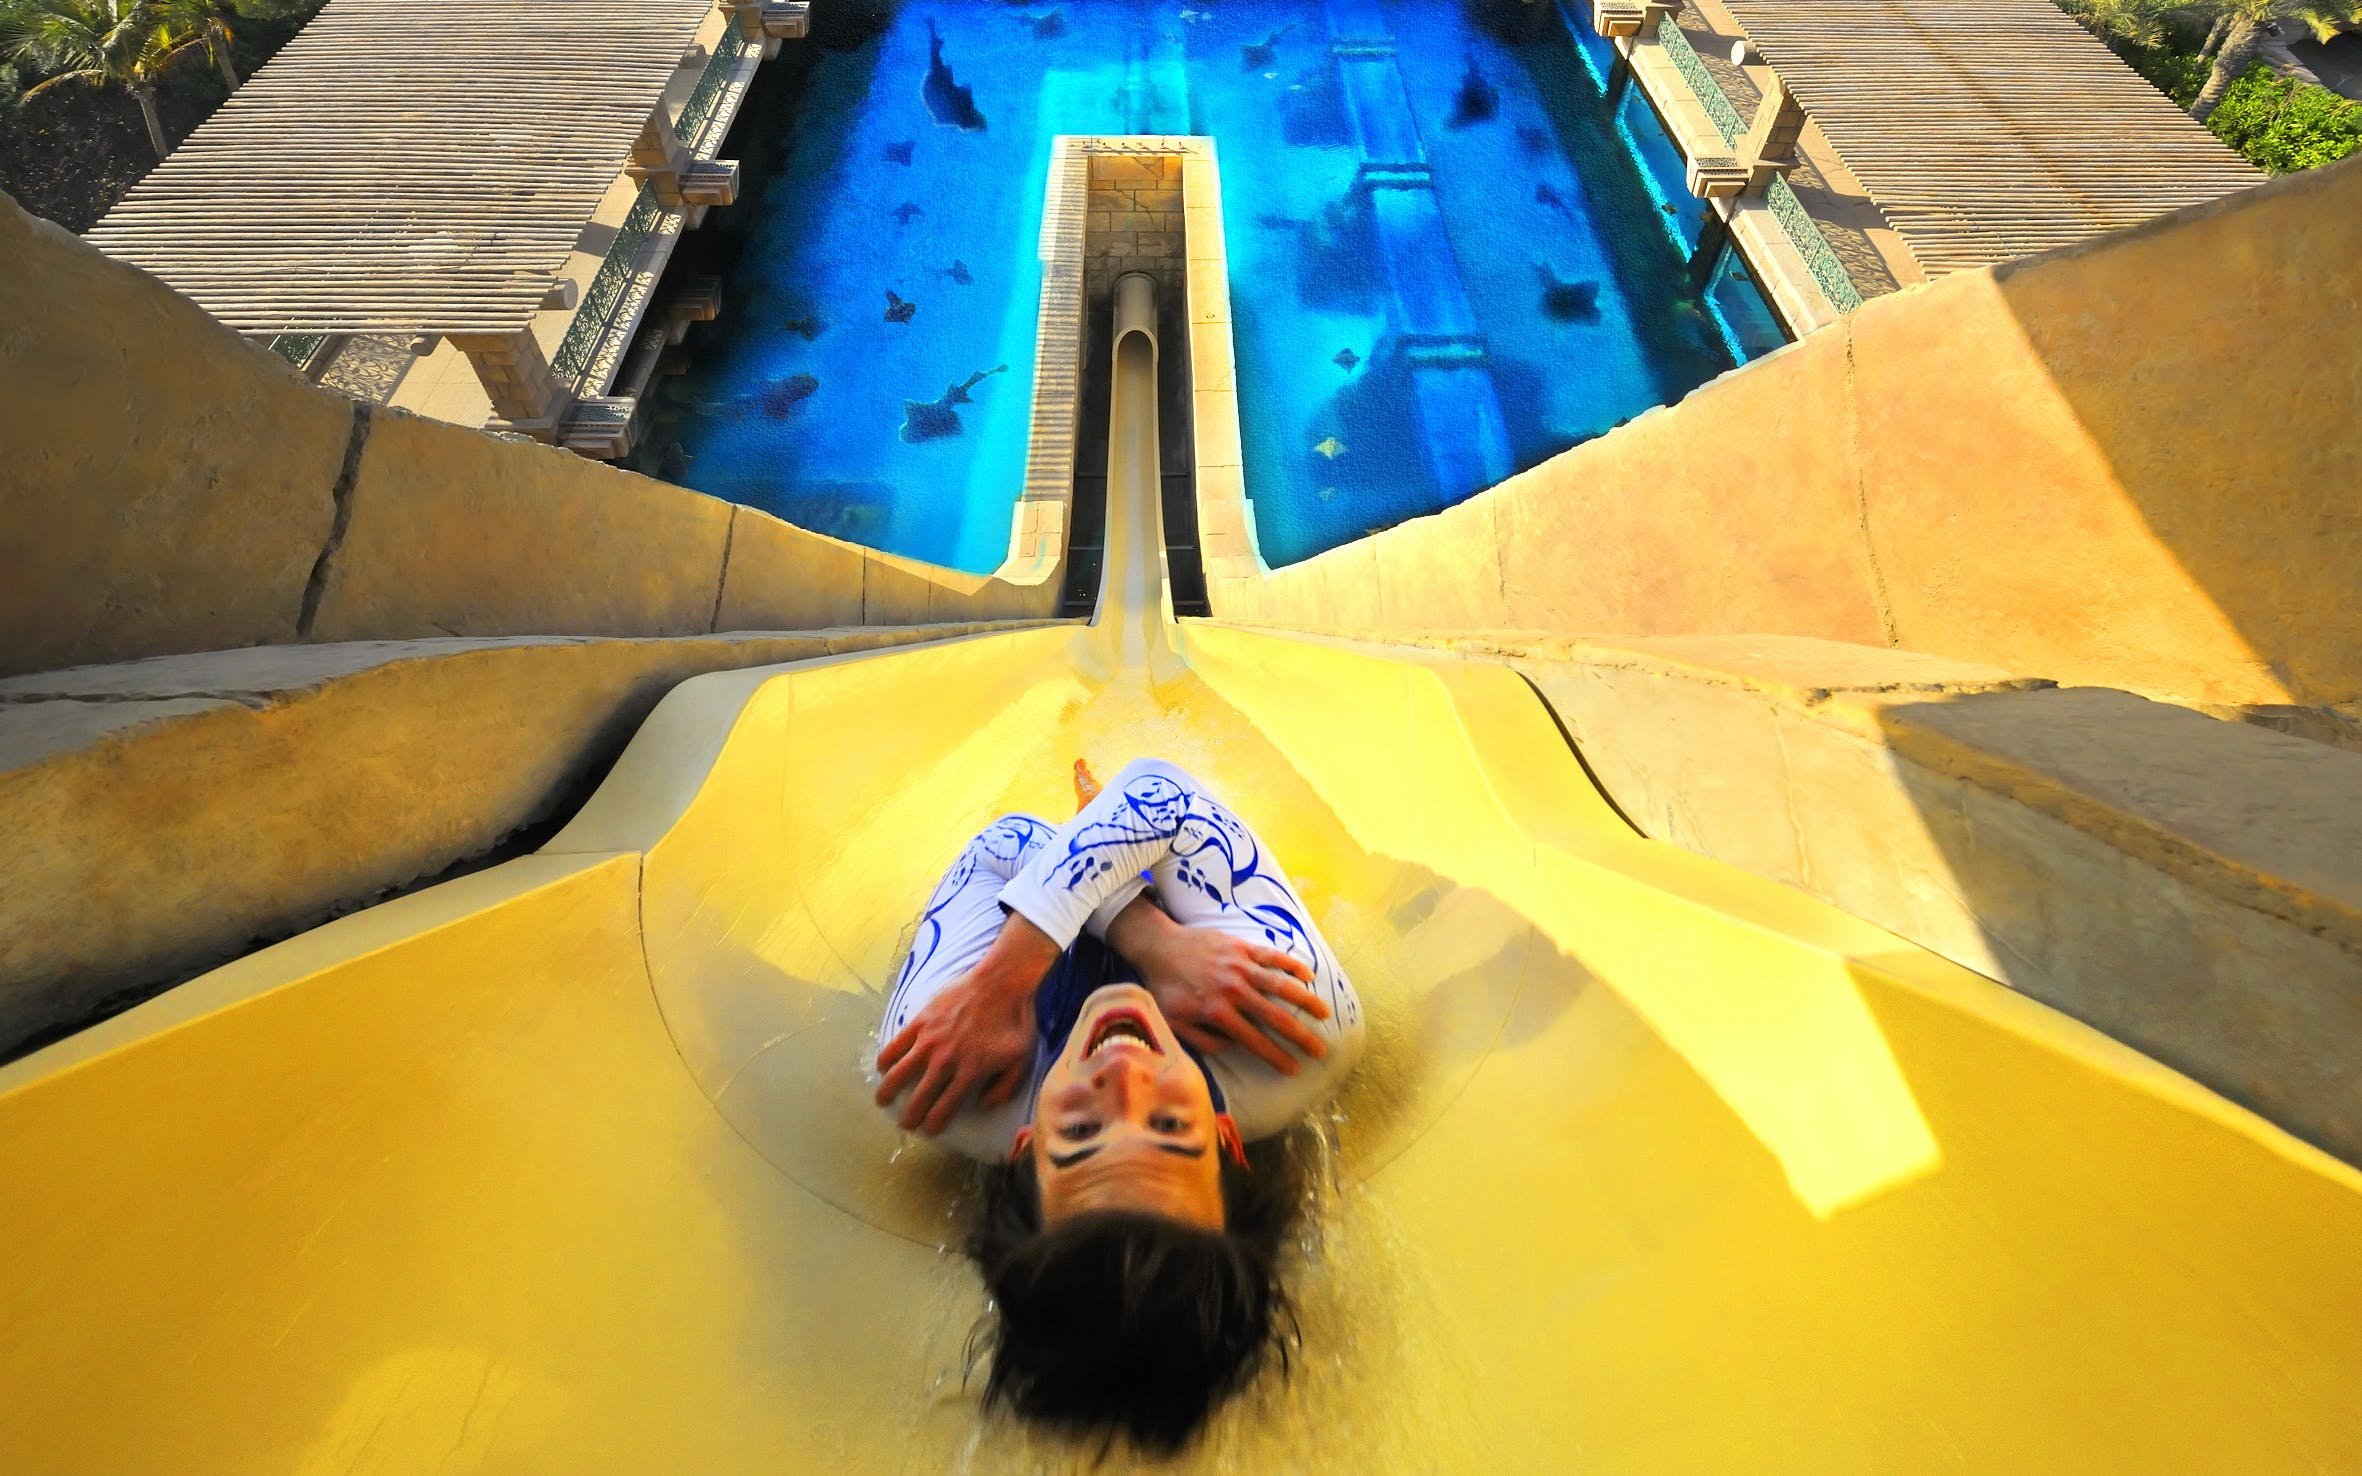 aquaventure waterpark & dubai city tour combo-3